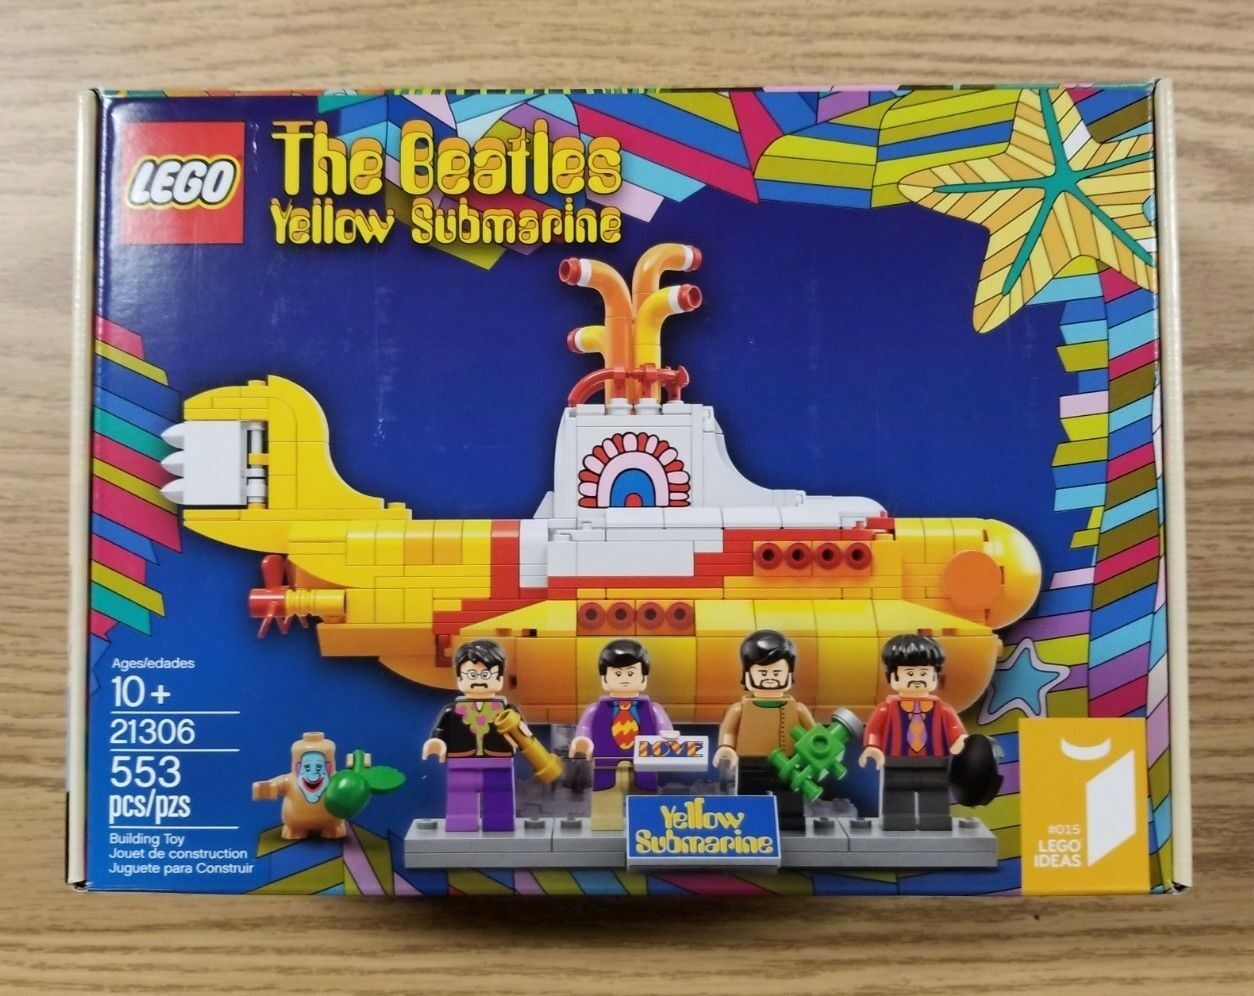 LEGO Ideas Gelb Submarine (21306) The Beatles Brand New In Box W/ Minifigures